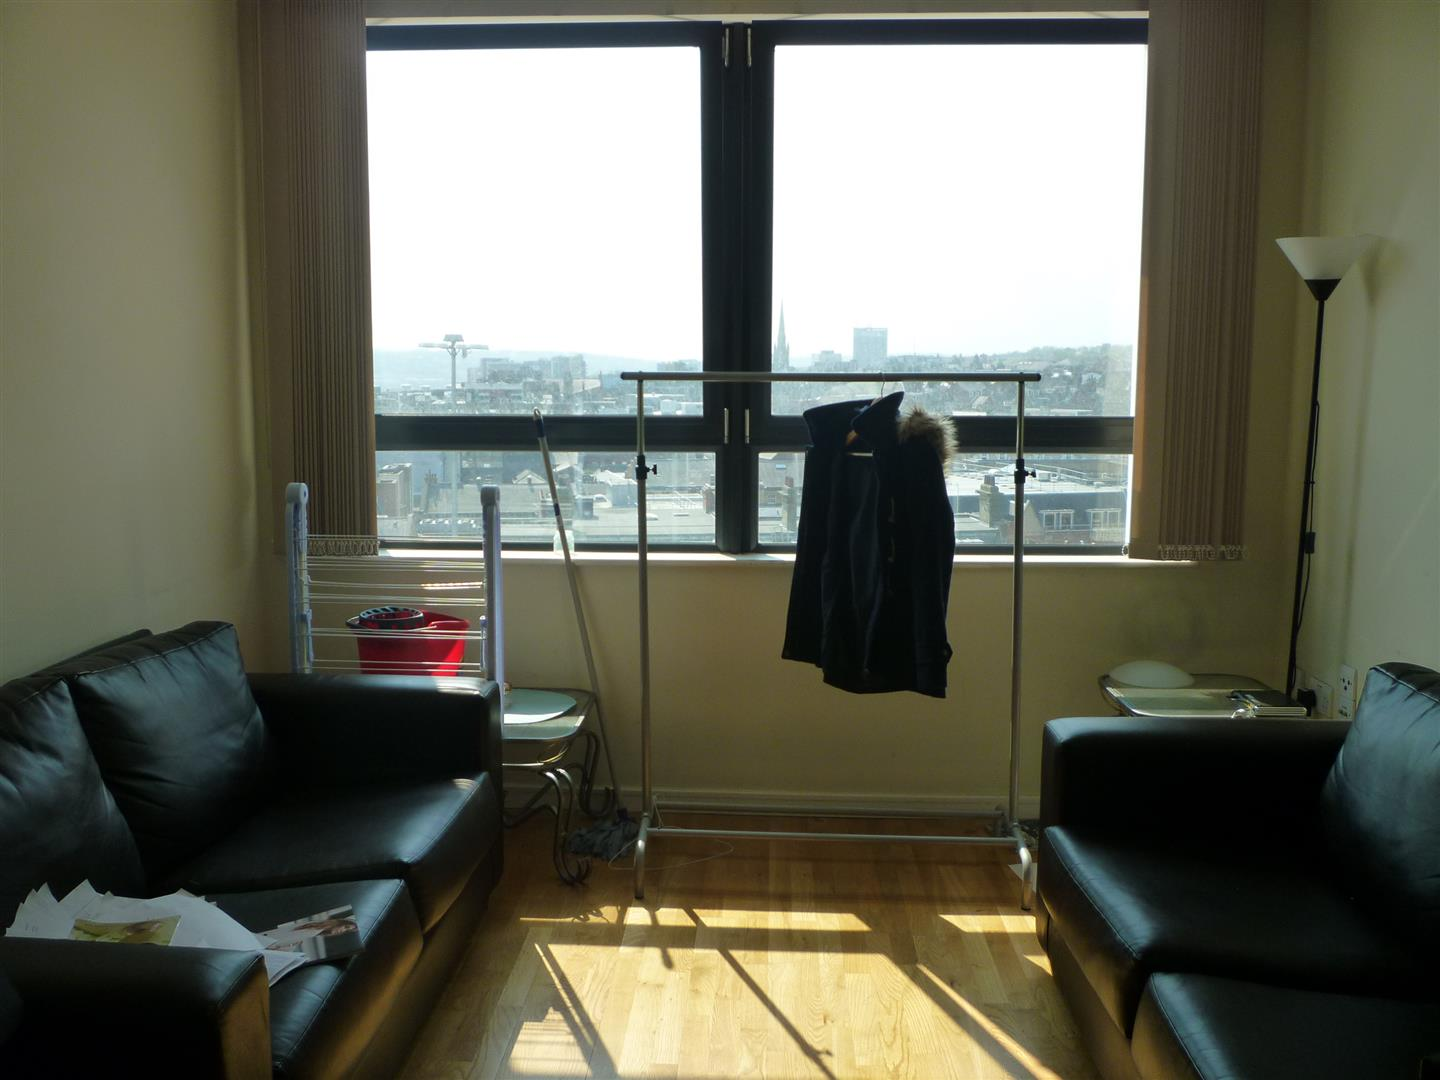 55 Degrees North Newcastle upon Tyne, 1 Bedrooms  Apartment ,To Let